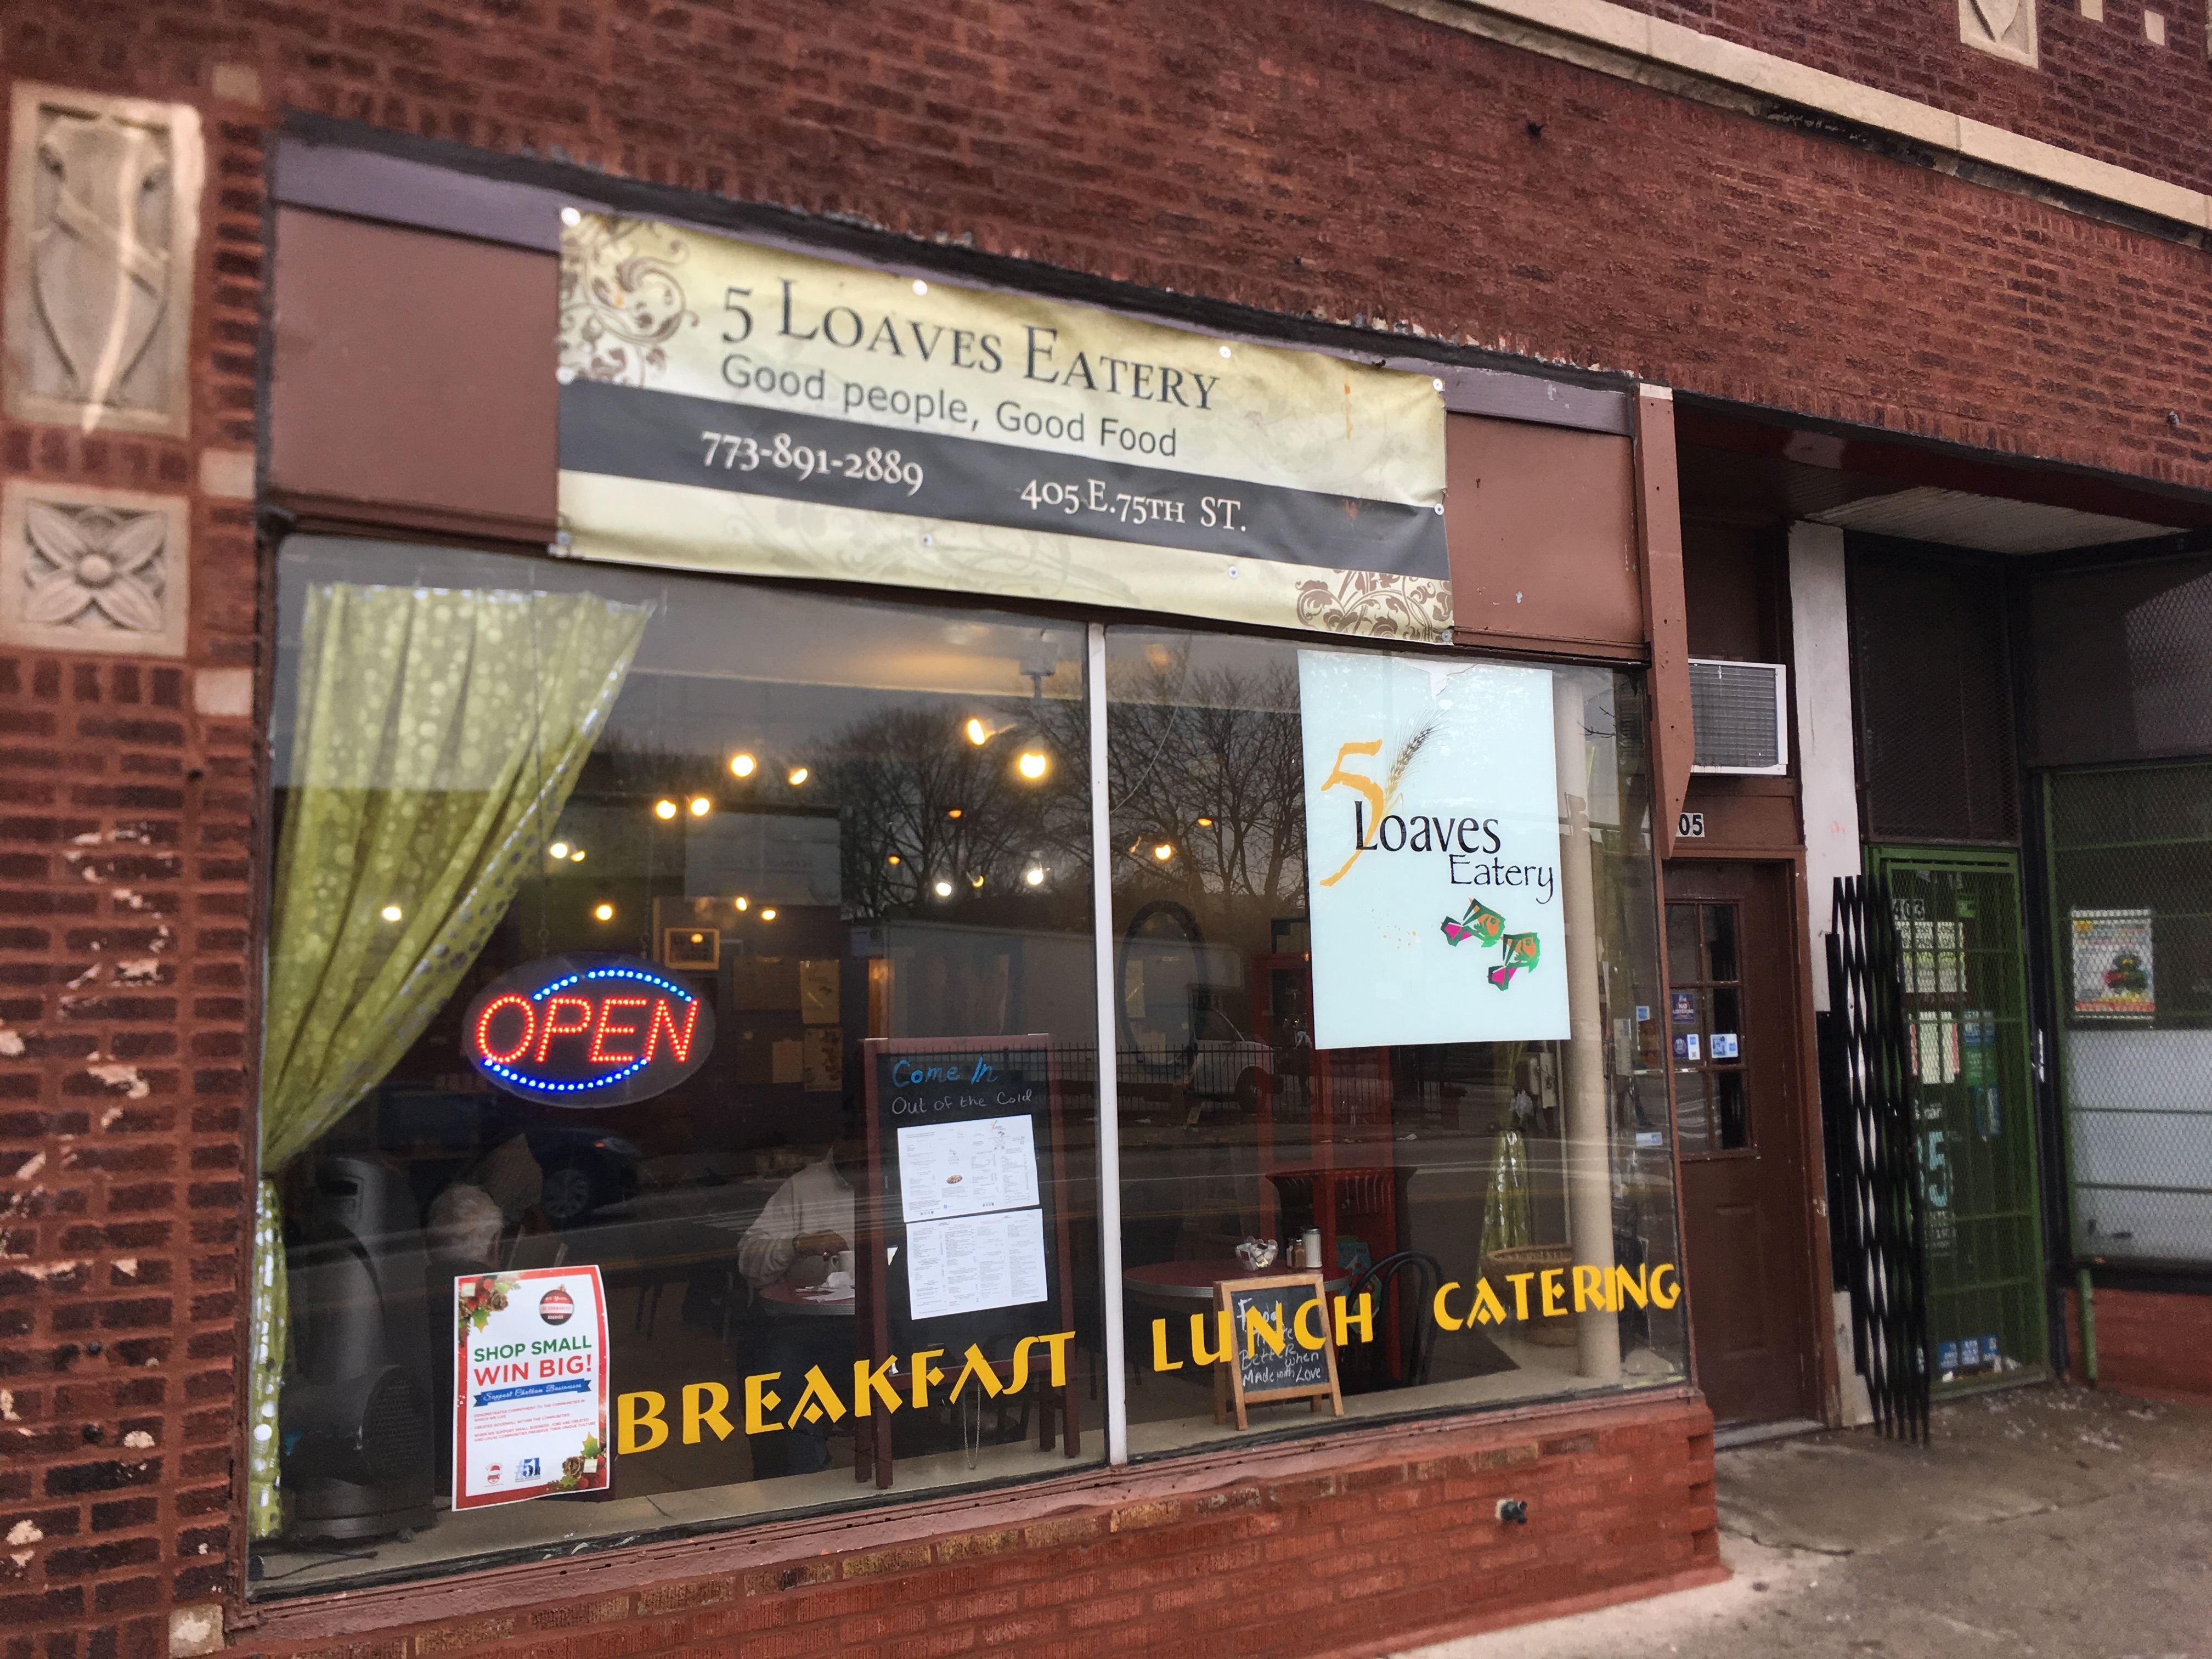 5 loaves eatery